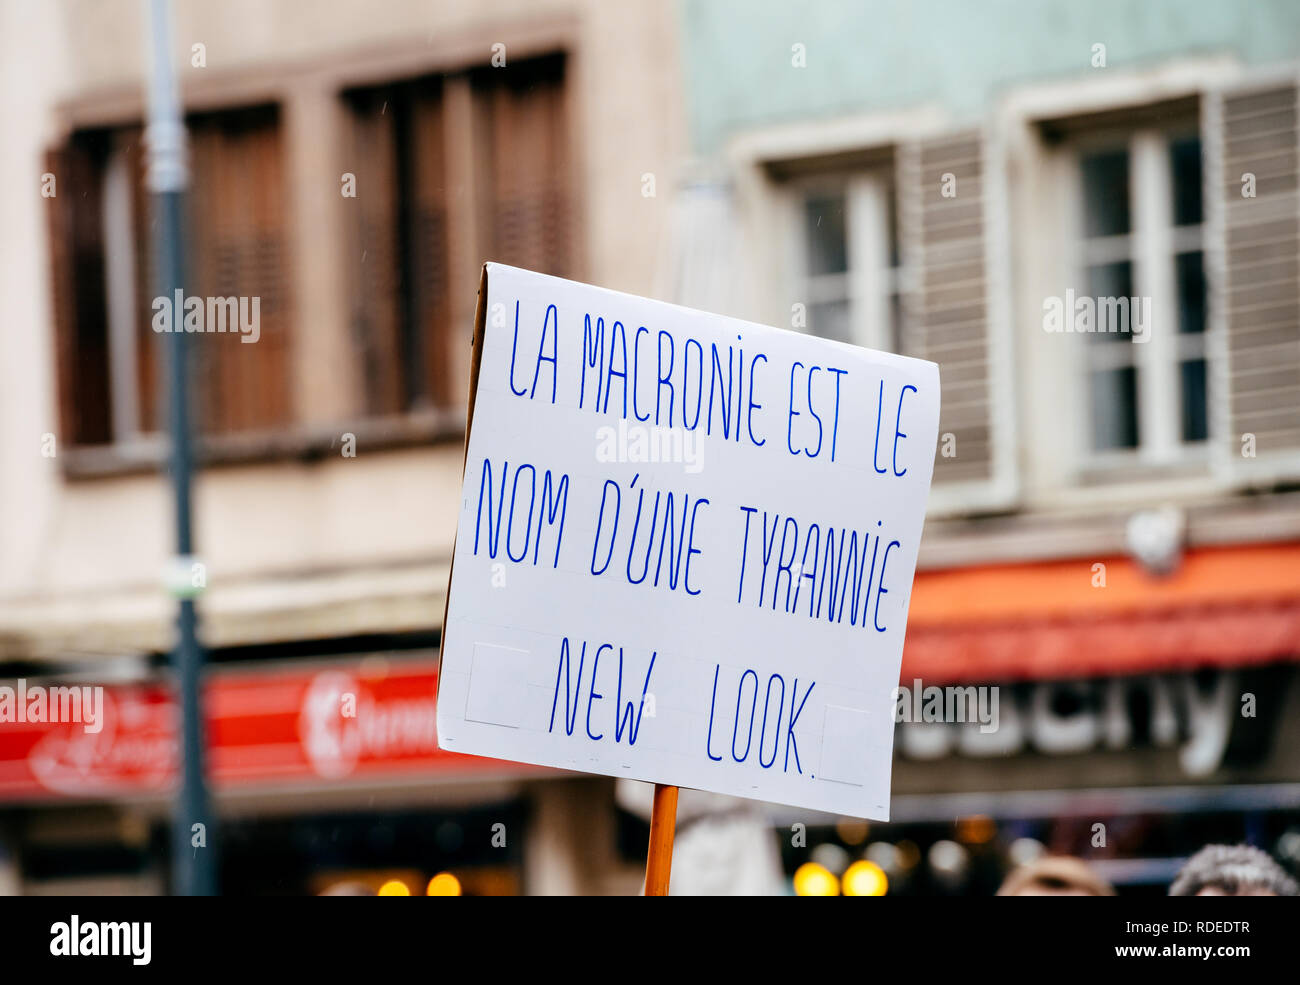 STRASBOURG, FRANCE  - MAR 22, 2018: La Macronie est le nom d'un tyrannie new look - Macronie is the name of a tyranny new look on placard in in France at protest against Macron  - Stock Image